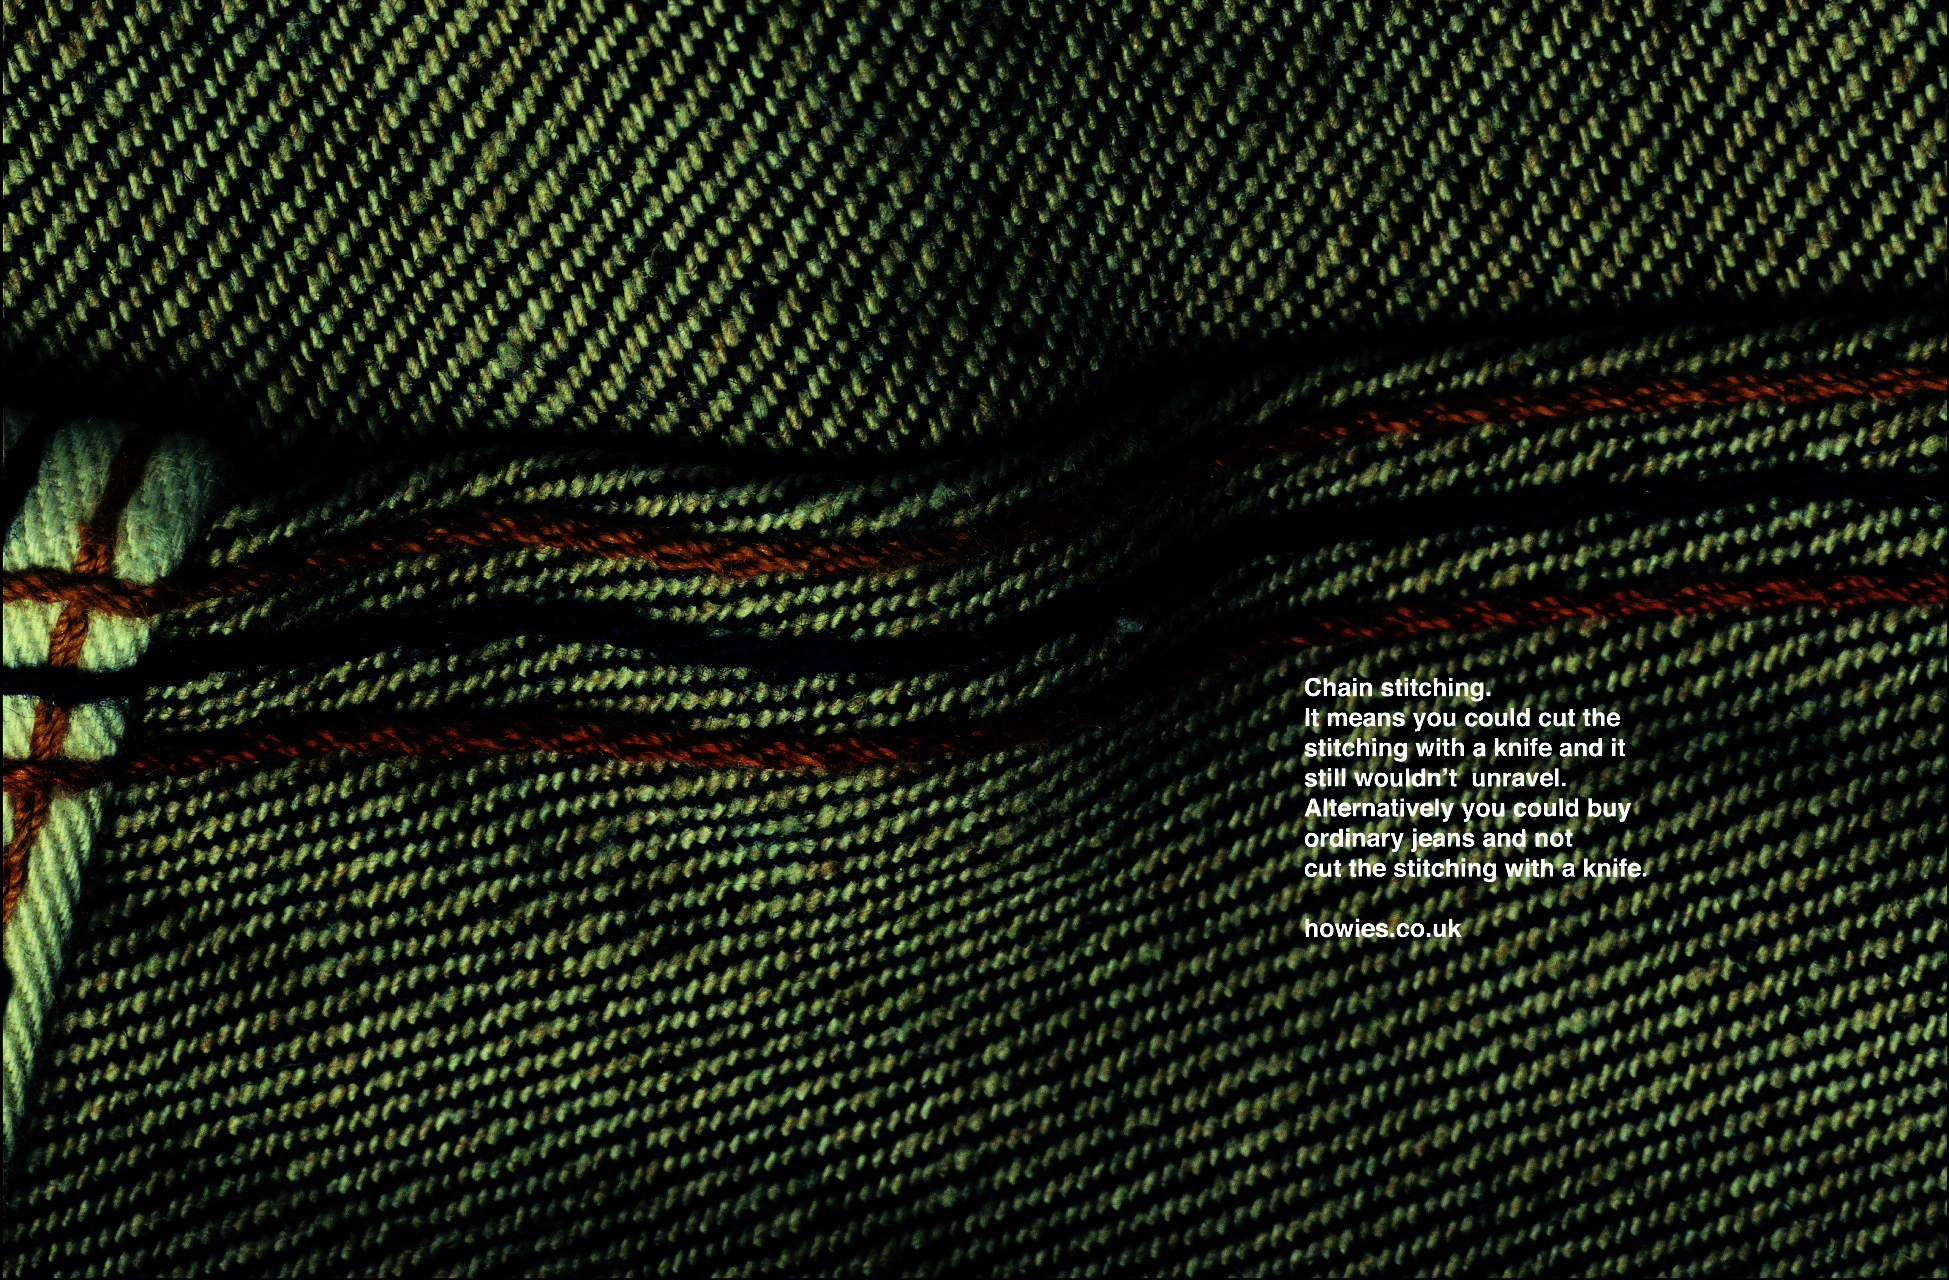 5. 'Chain Stitching' Howies, DHM, Final 2.jpg